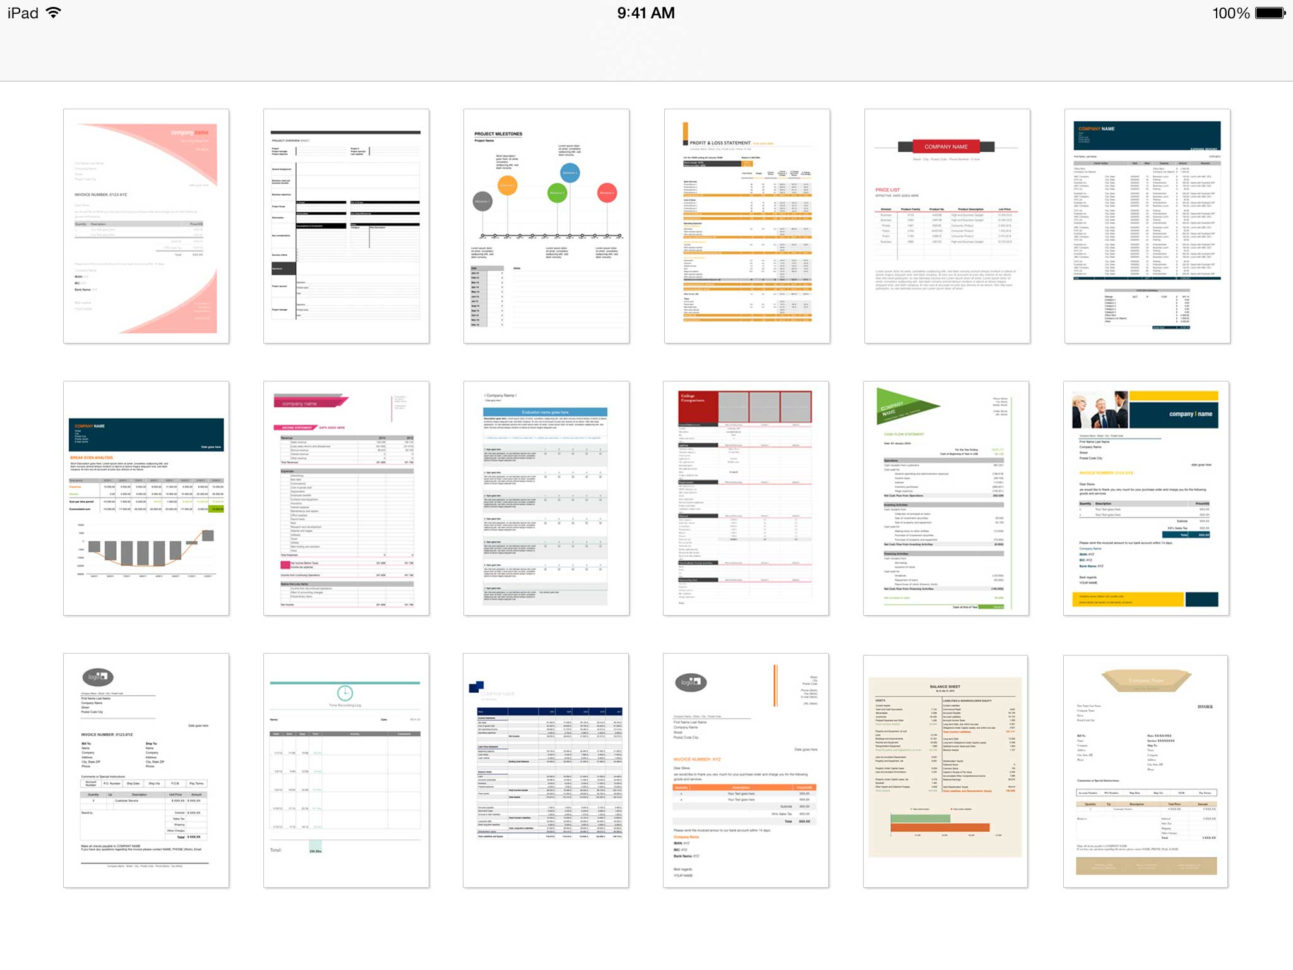 Excel Spreadsheet For Ipad Inside Templates For Excel For Ipad, Iphone, And Ipod Touch  Made For Use